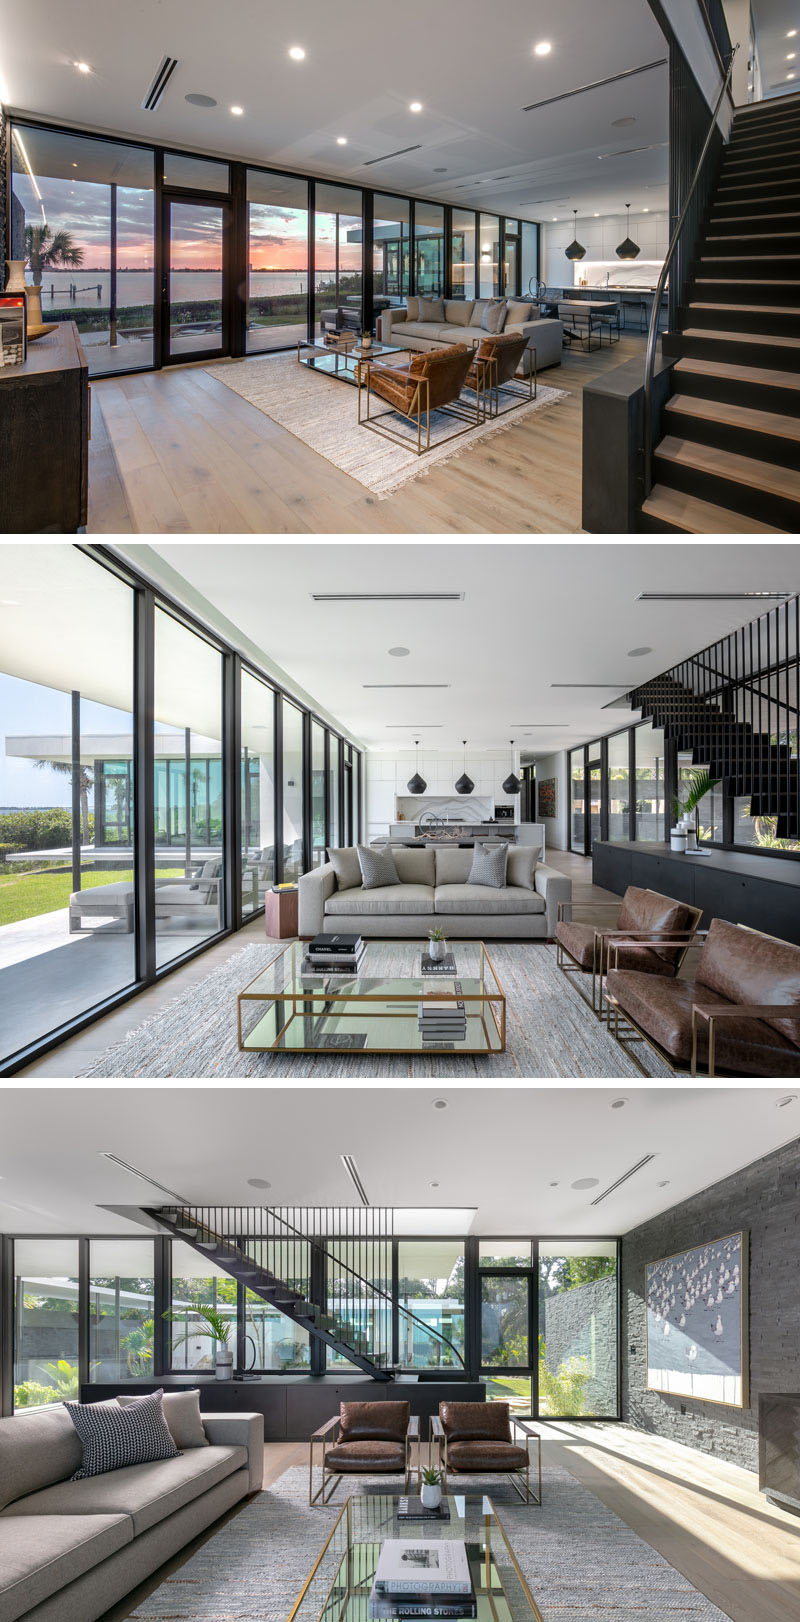 The SeaThru House by Sweet Sparkman Architects